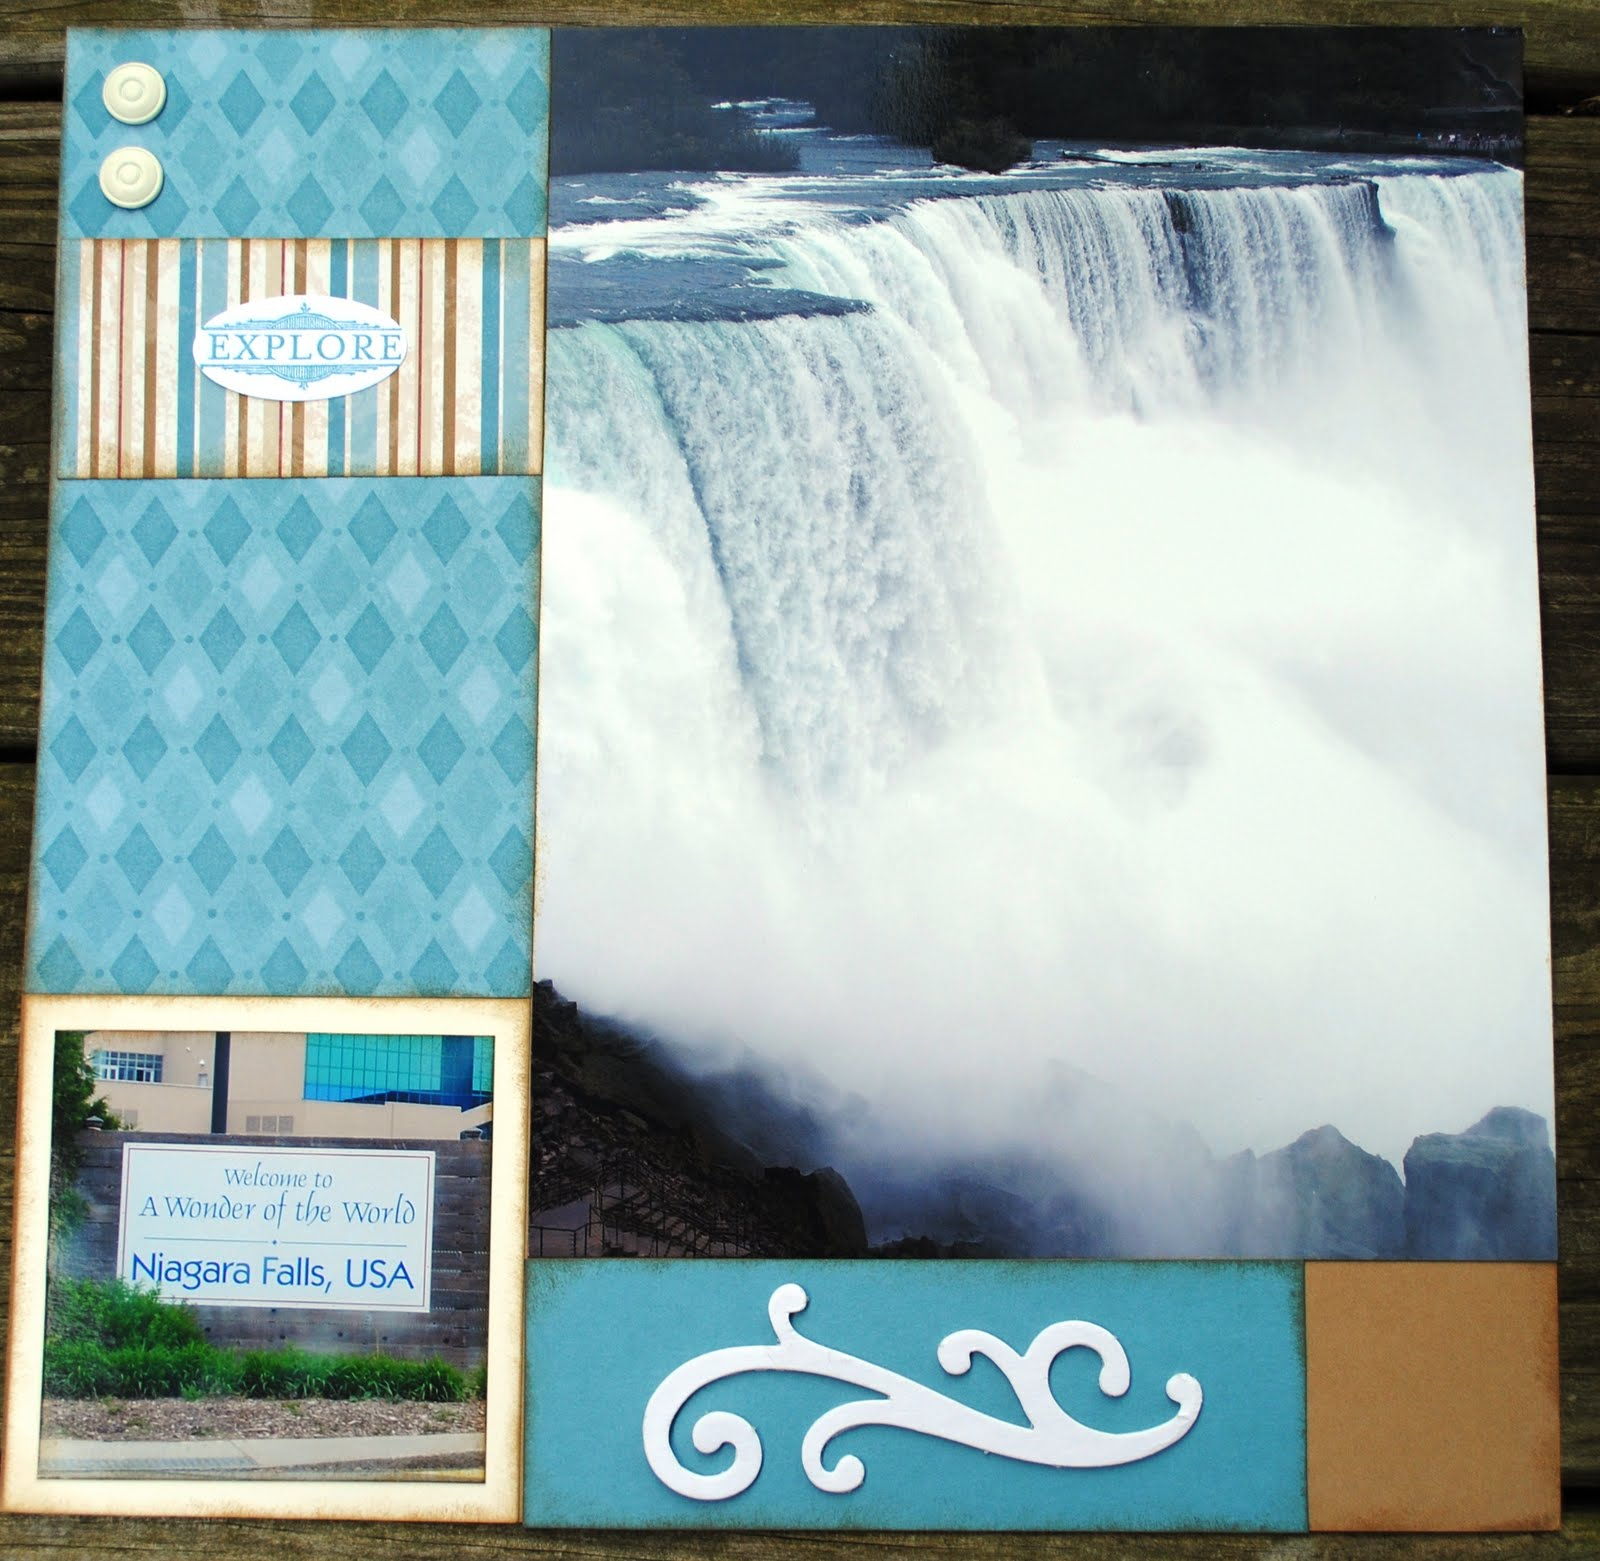 Scrapbook ideas niagara falls - There S No Title But The Bottom Left Photo Clearly States That It S Niagara Falls